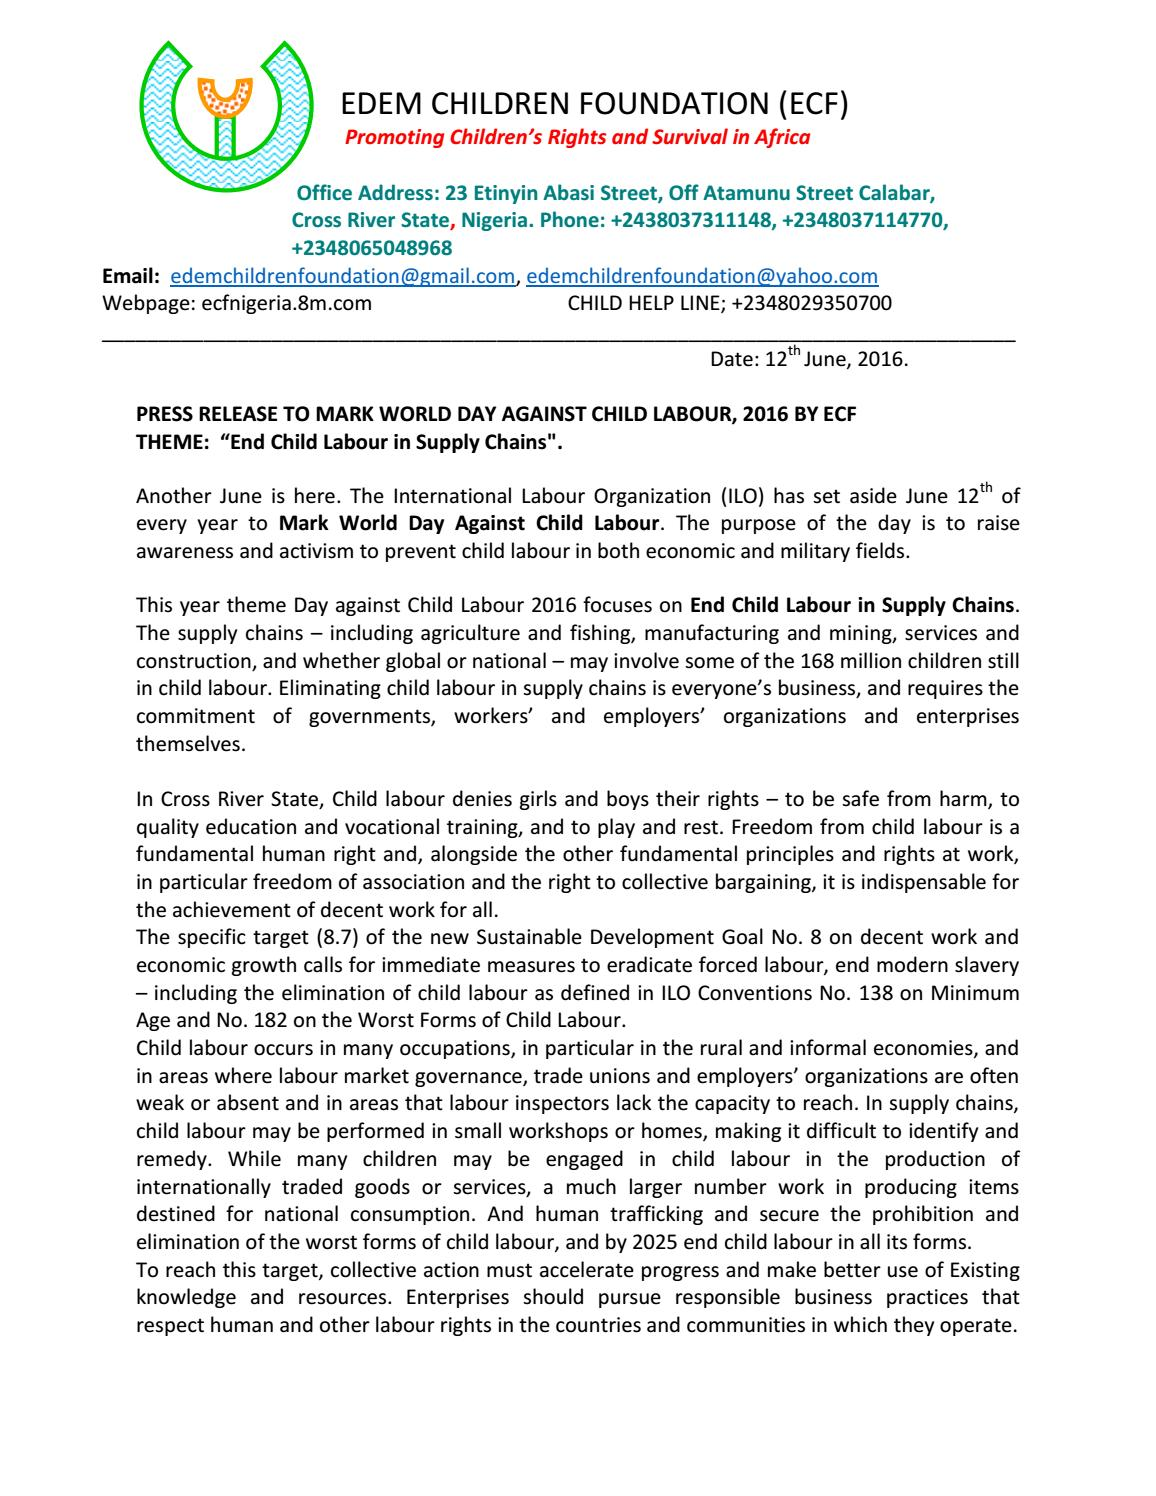 Press statement to mark international day to end child labour 2016 press statement to mark international day to end child labour 2016 in calabar by edem children found by calabar reporters issuu thecheapjerseys Images